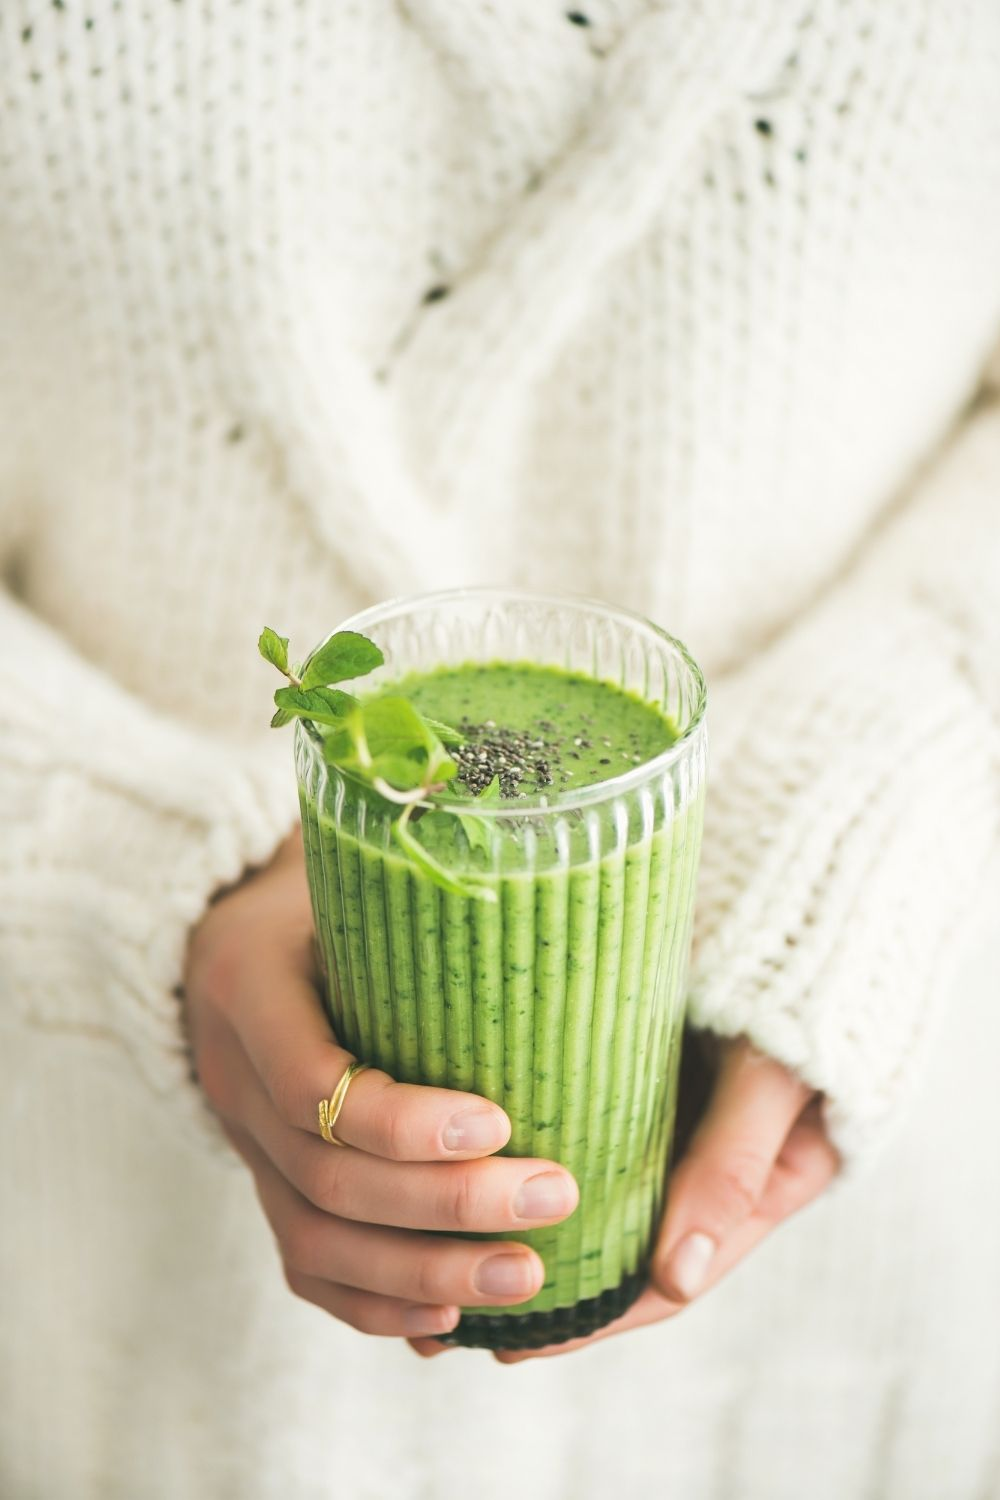 Woman in white sweater holding a glass of green juice